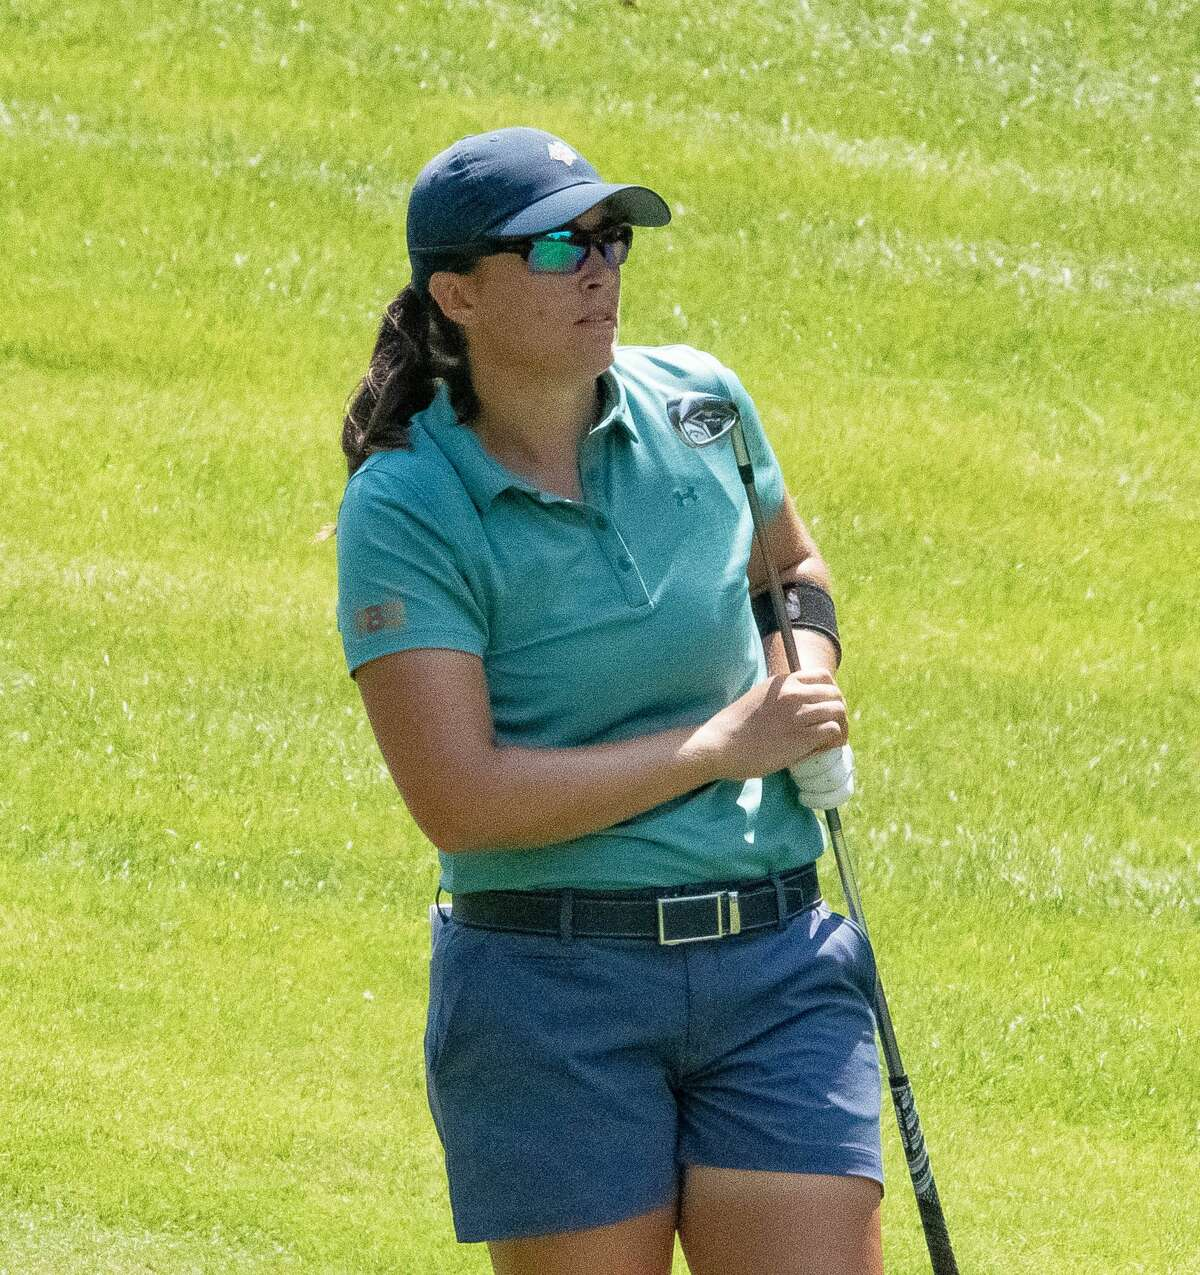 Dorsey Addicks is ranked 14th in driving distance on the Symetra Tour, averaging 281 yards. She hits an approach shot to the green on the 8th hole at Pinehaven on July 23, 2021, at the Twin Bridges Championship. (Photo by Joyce Bassett)